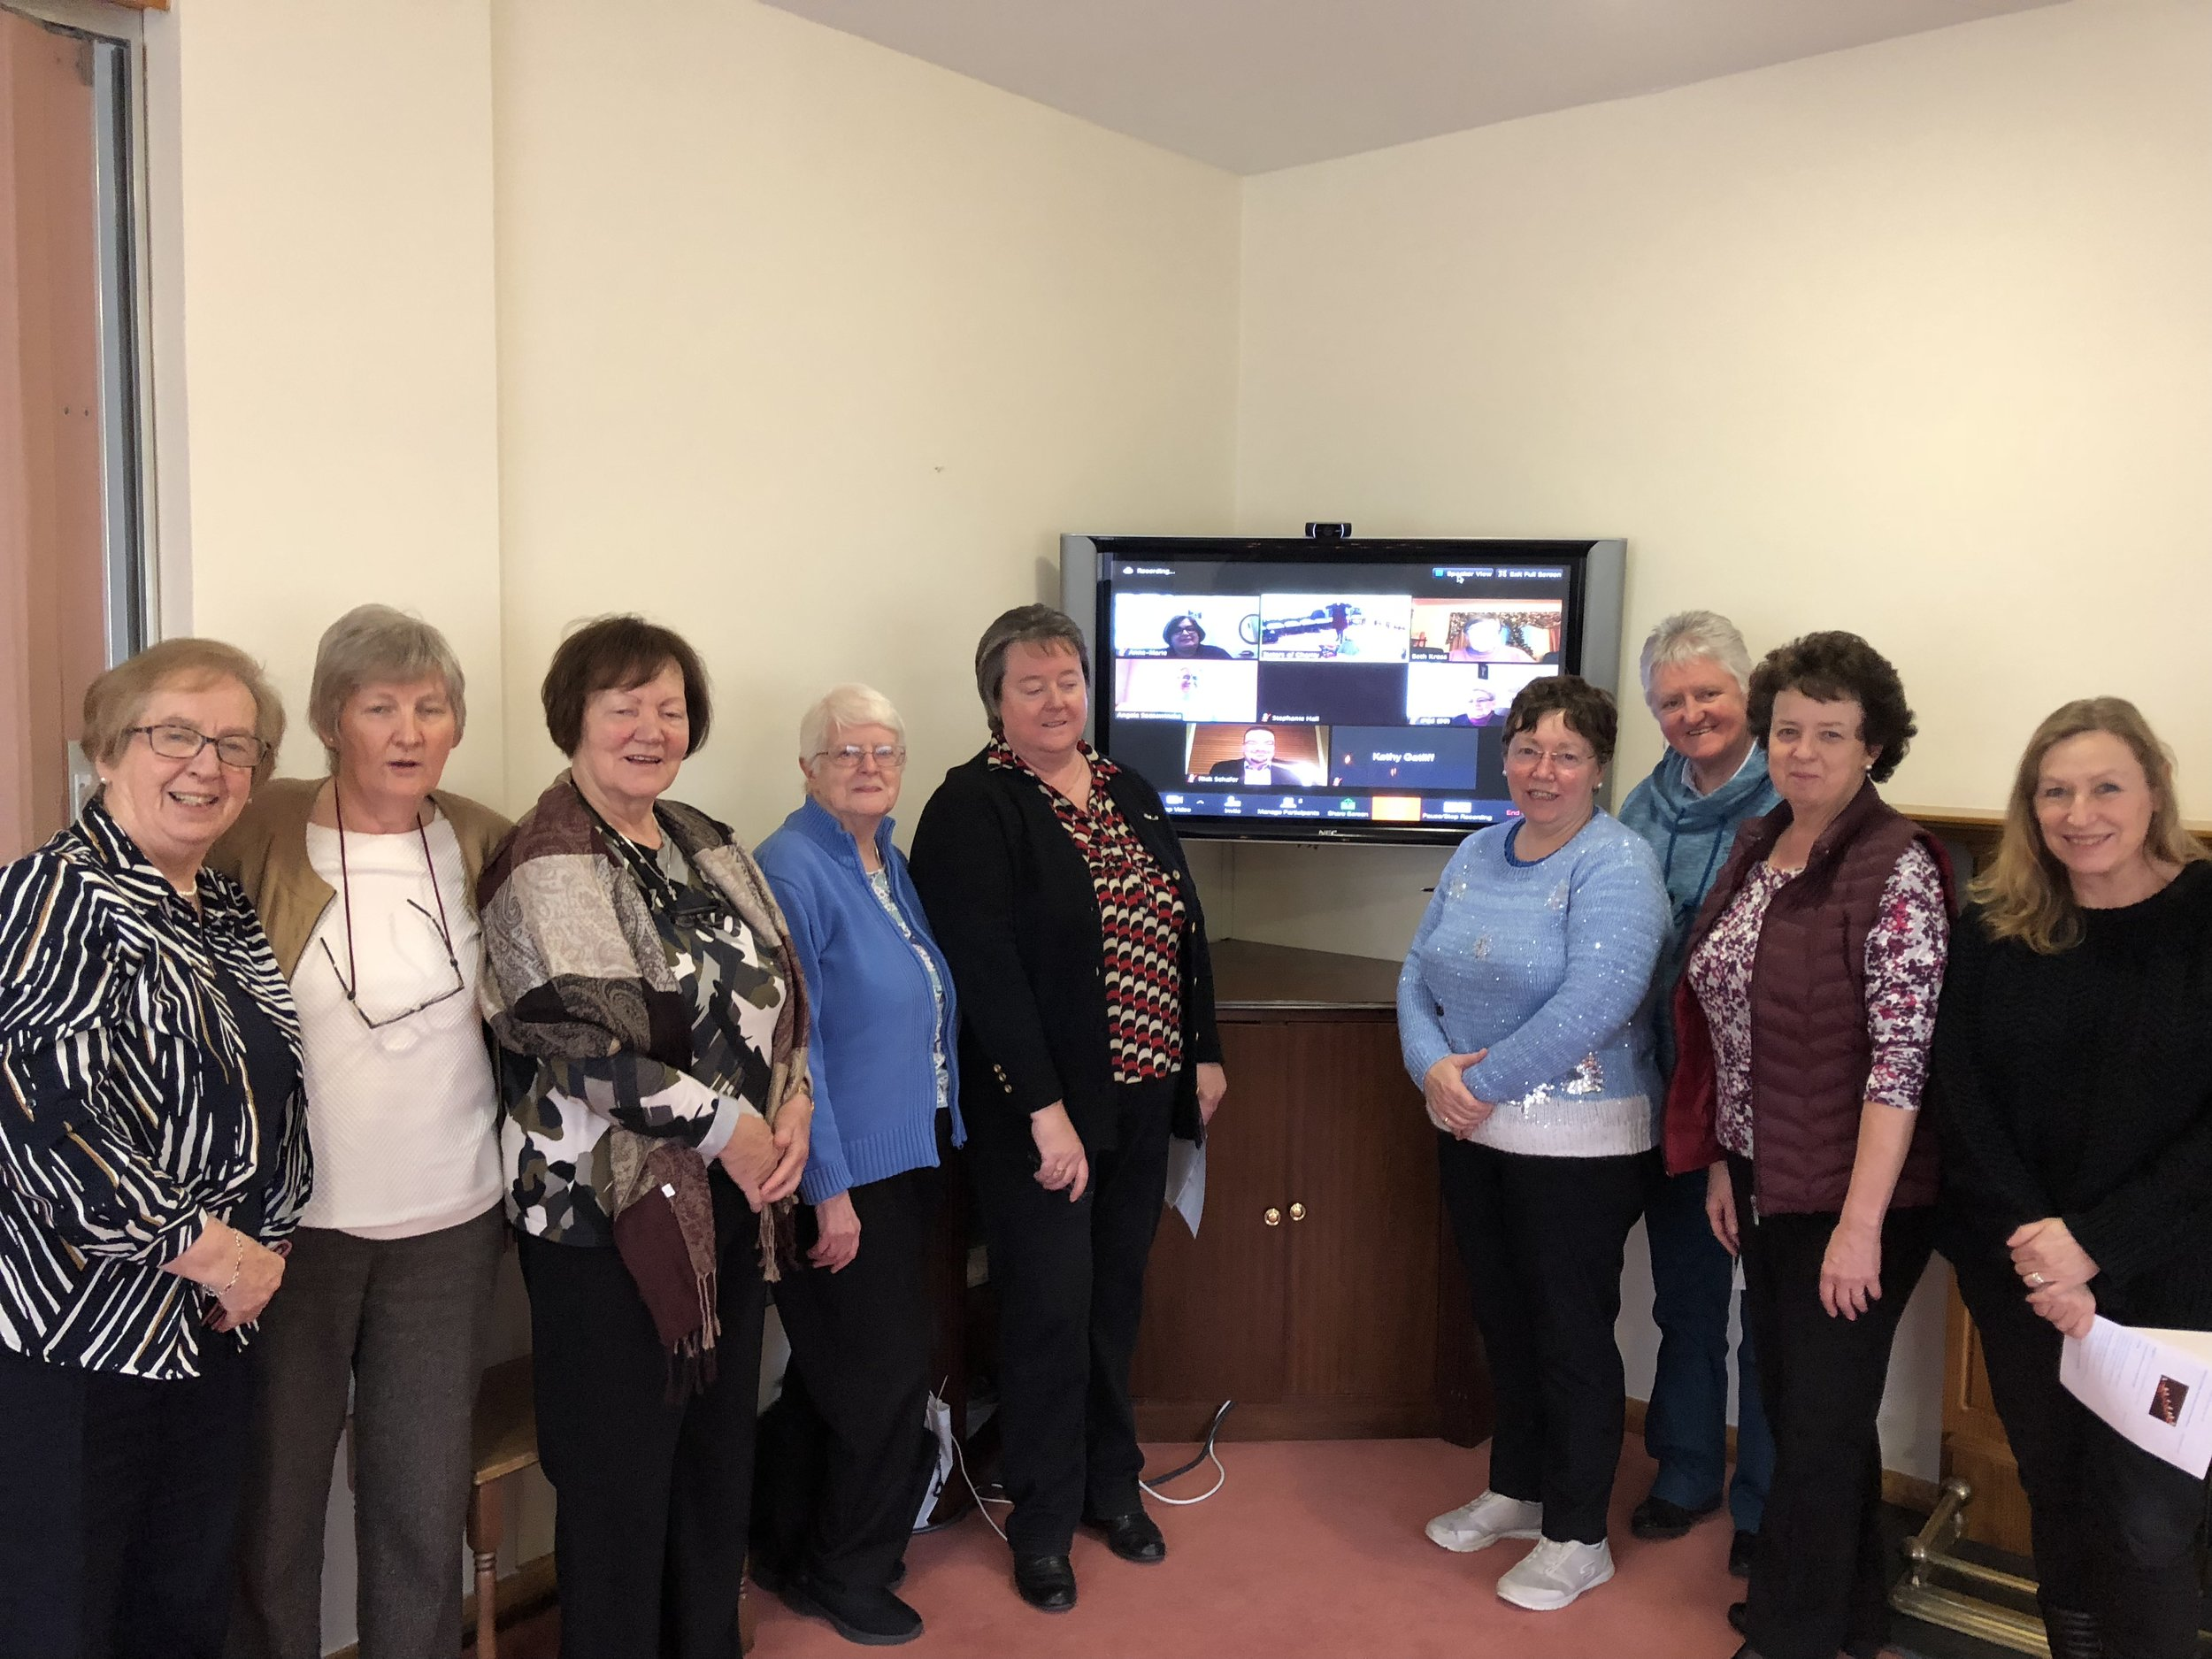 l to r: Srs Una Agnew, Suzanne Ryder, Attracta Tighe, Catherine Lennon, Patricia Lenihan & Margaret Cartwright (Vocations Director), Sr Marie Stuart, Sr Marie Dunne, Michelle Robertson (Communications Officer, Srs of Our Lady of Apostles)